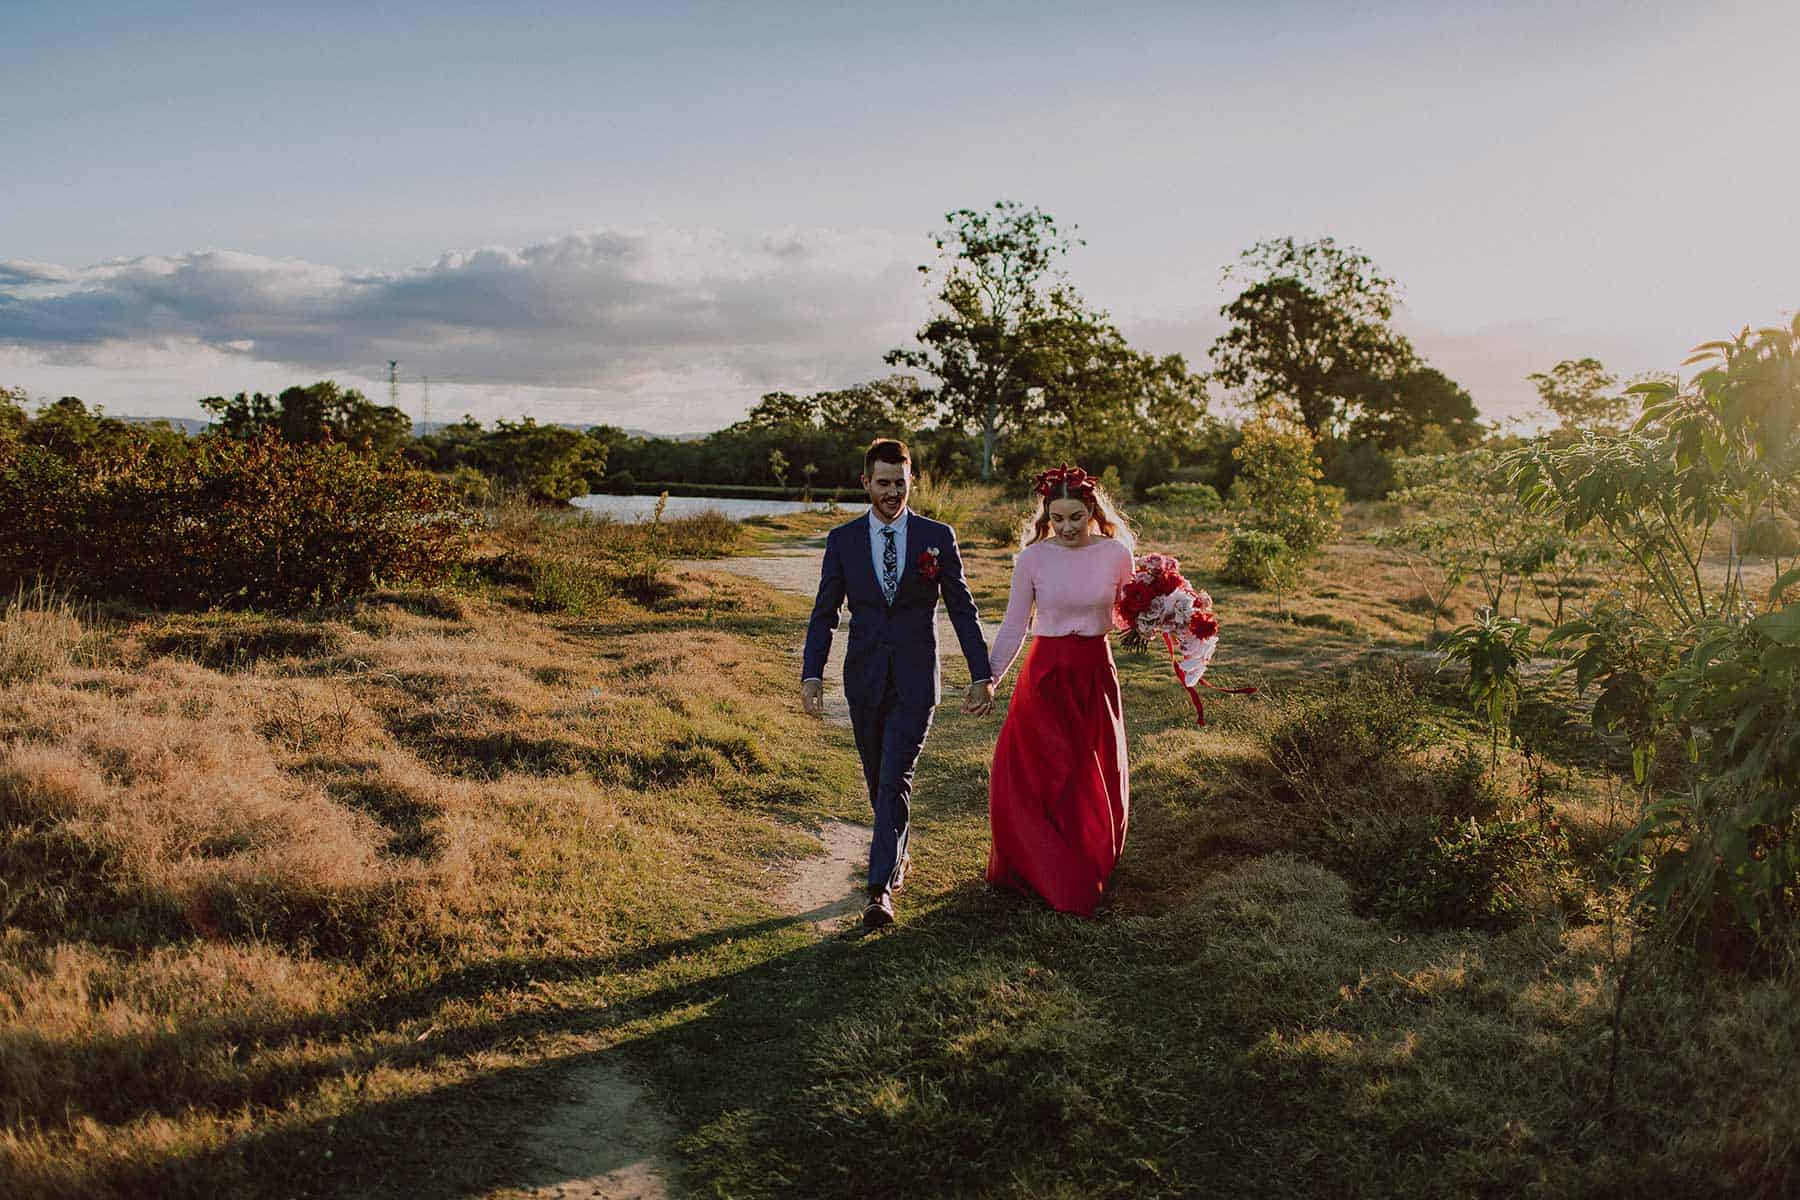 Brisbane wedding photographer Juddric Photography